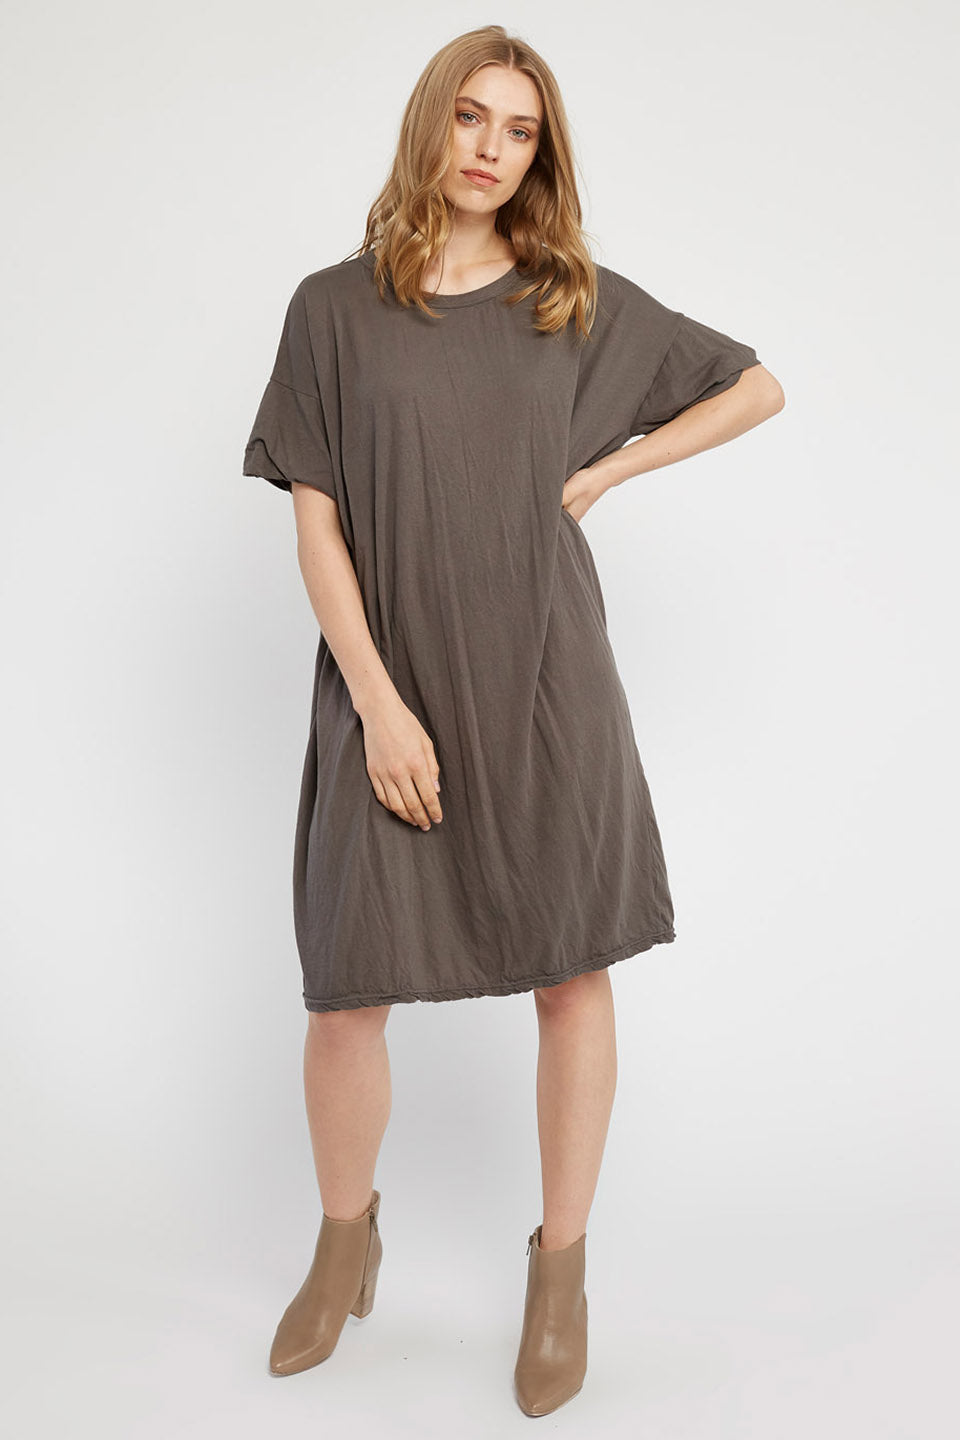 SWISSY DRESS - WOODEN